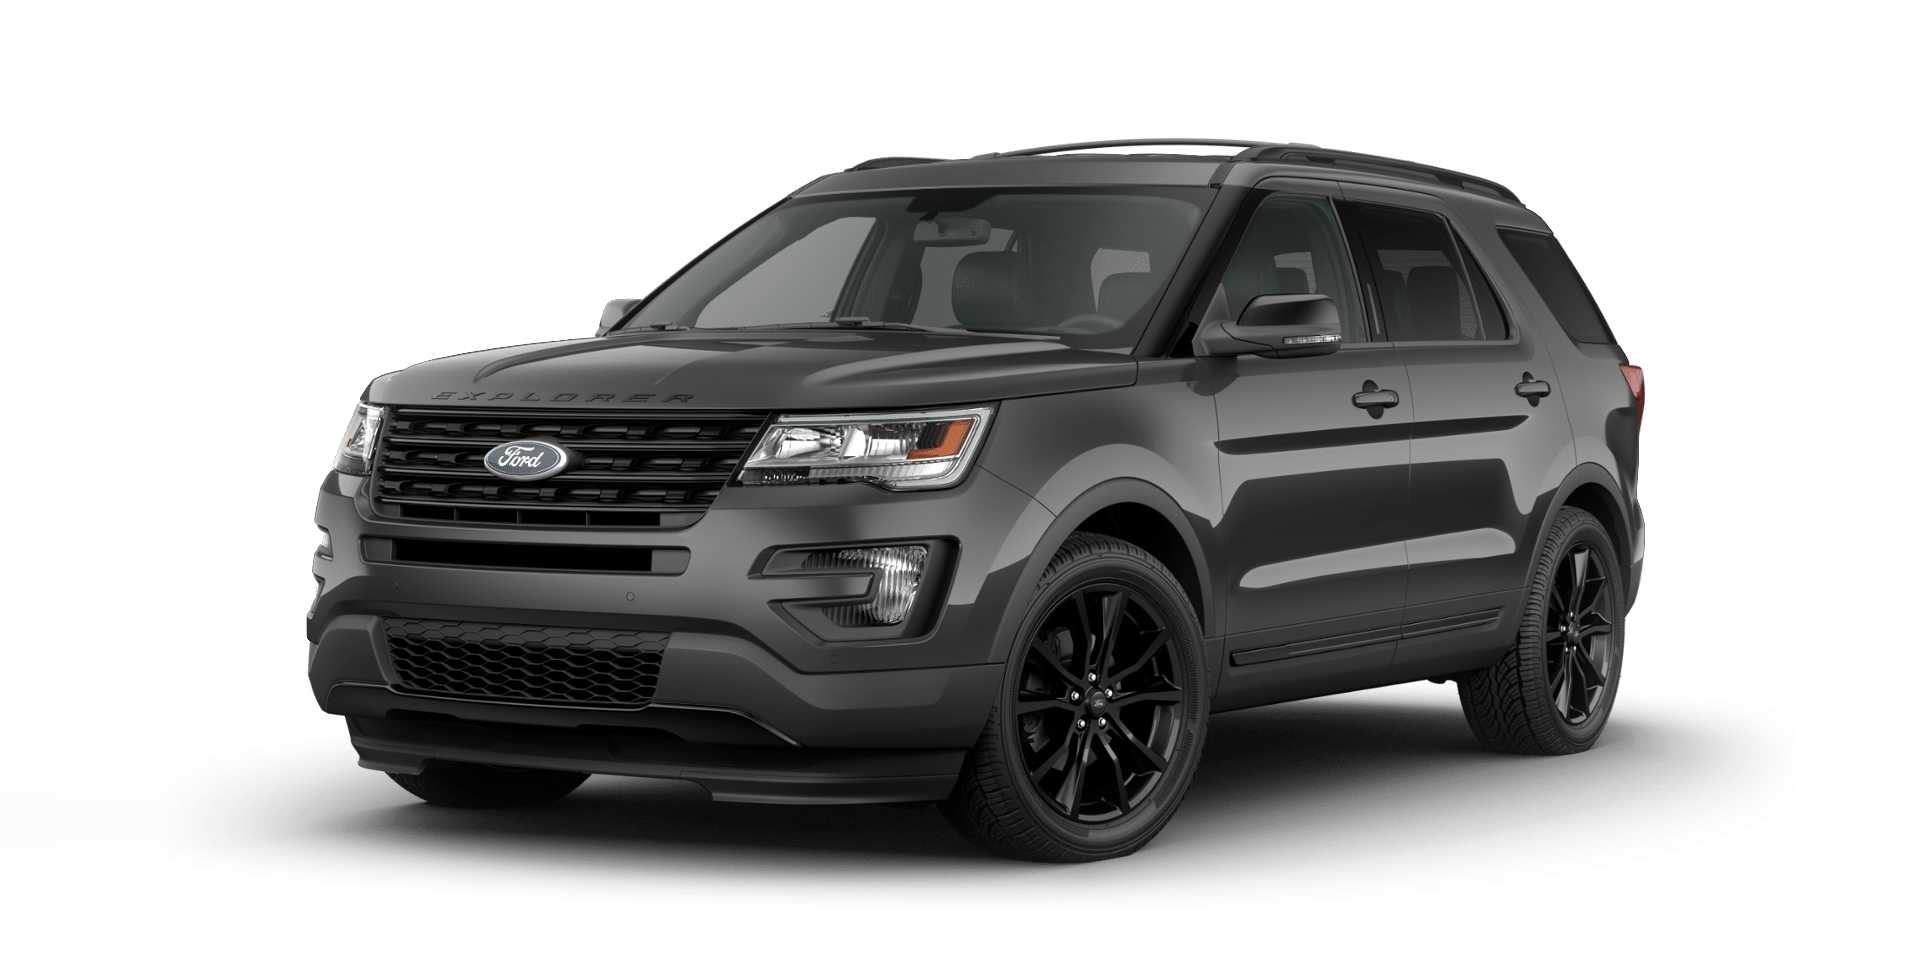 Best 25 ford explorer price ideas on pinterest ford explorer ford explorer reviews and ford explorer sport